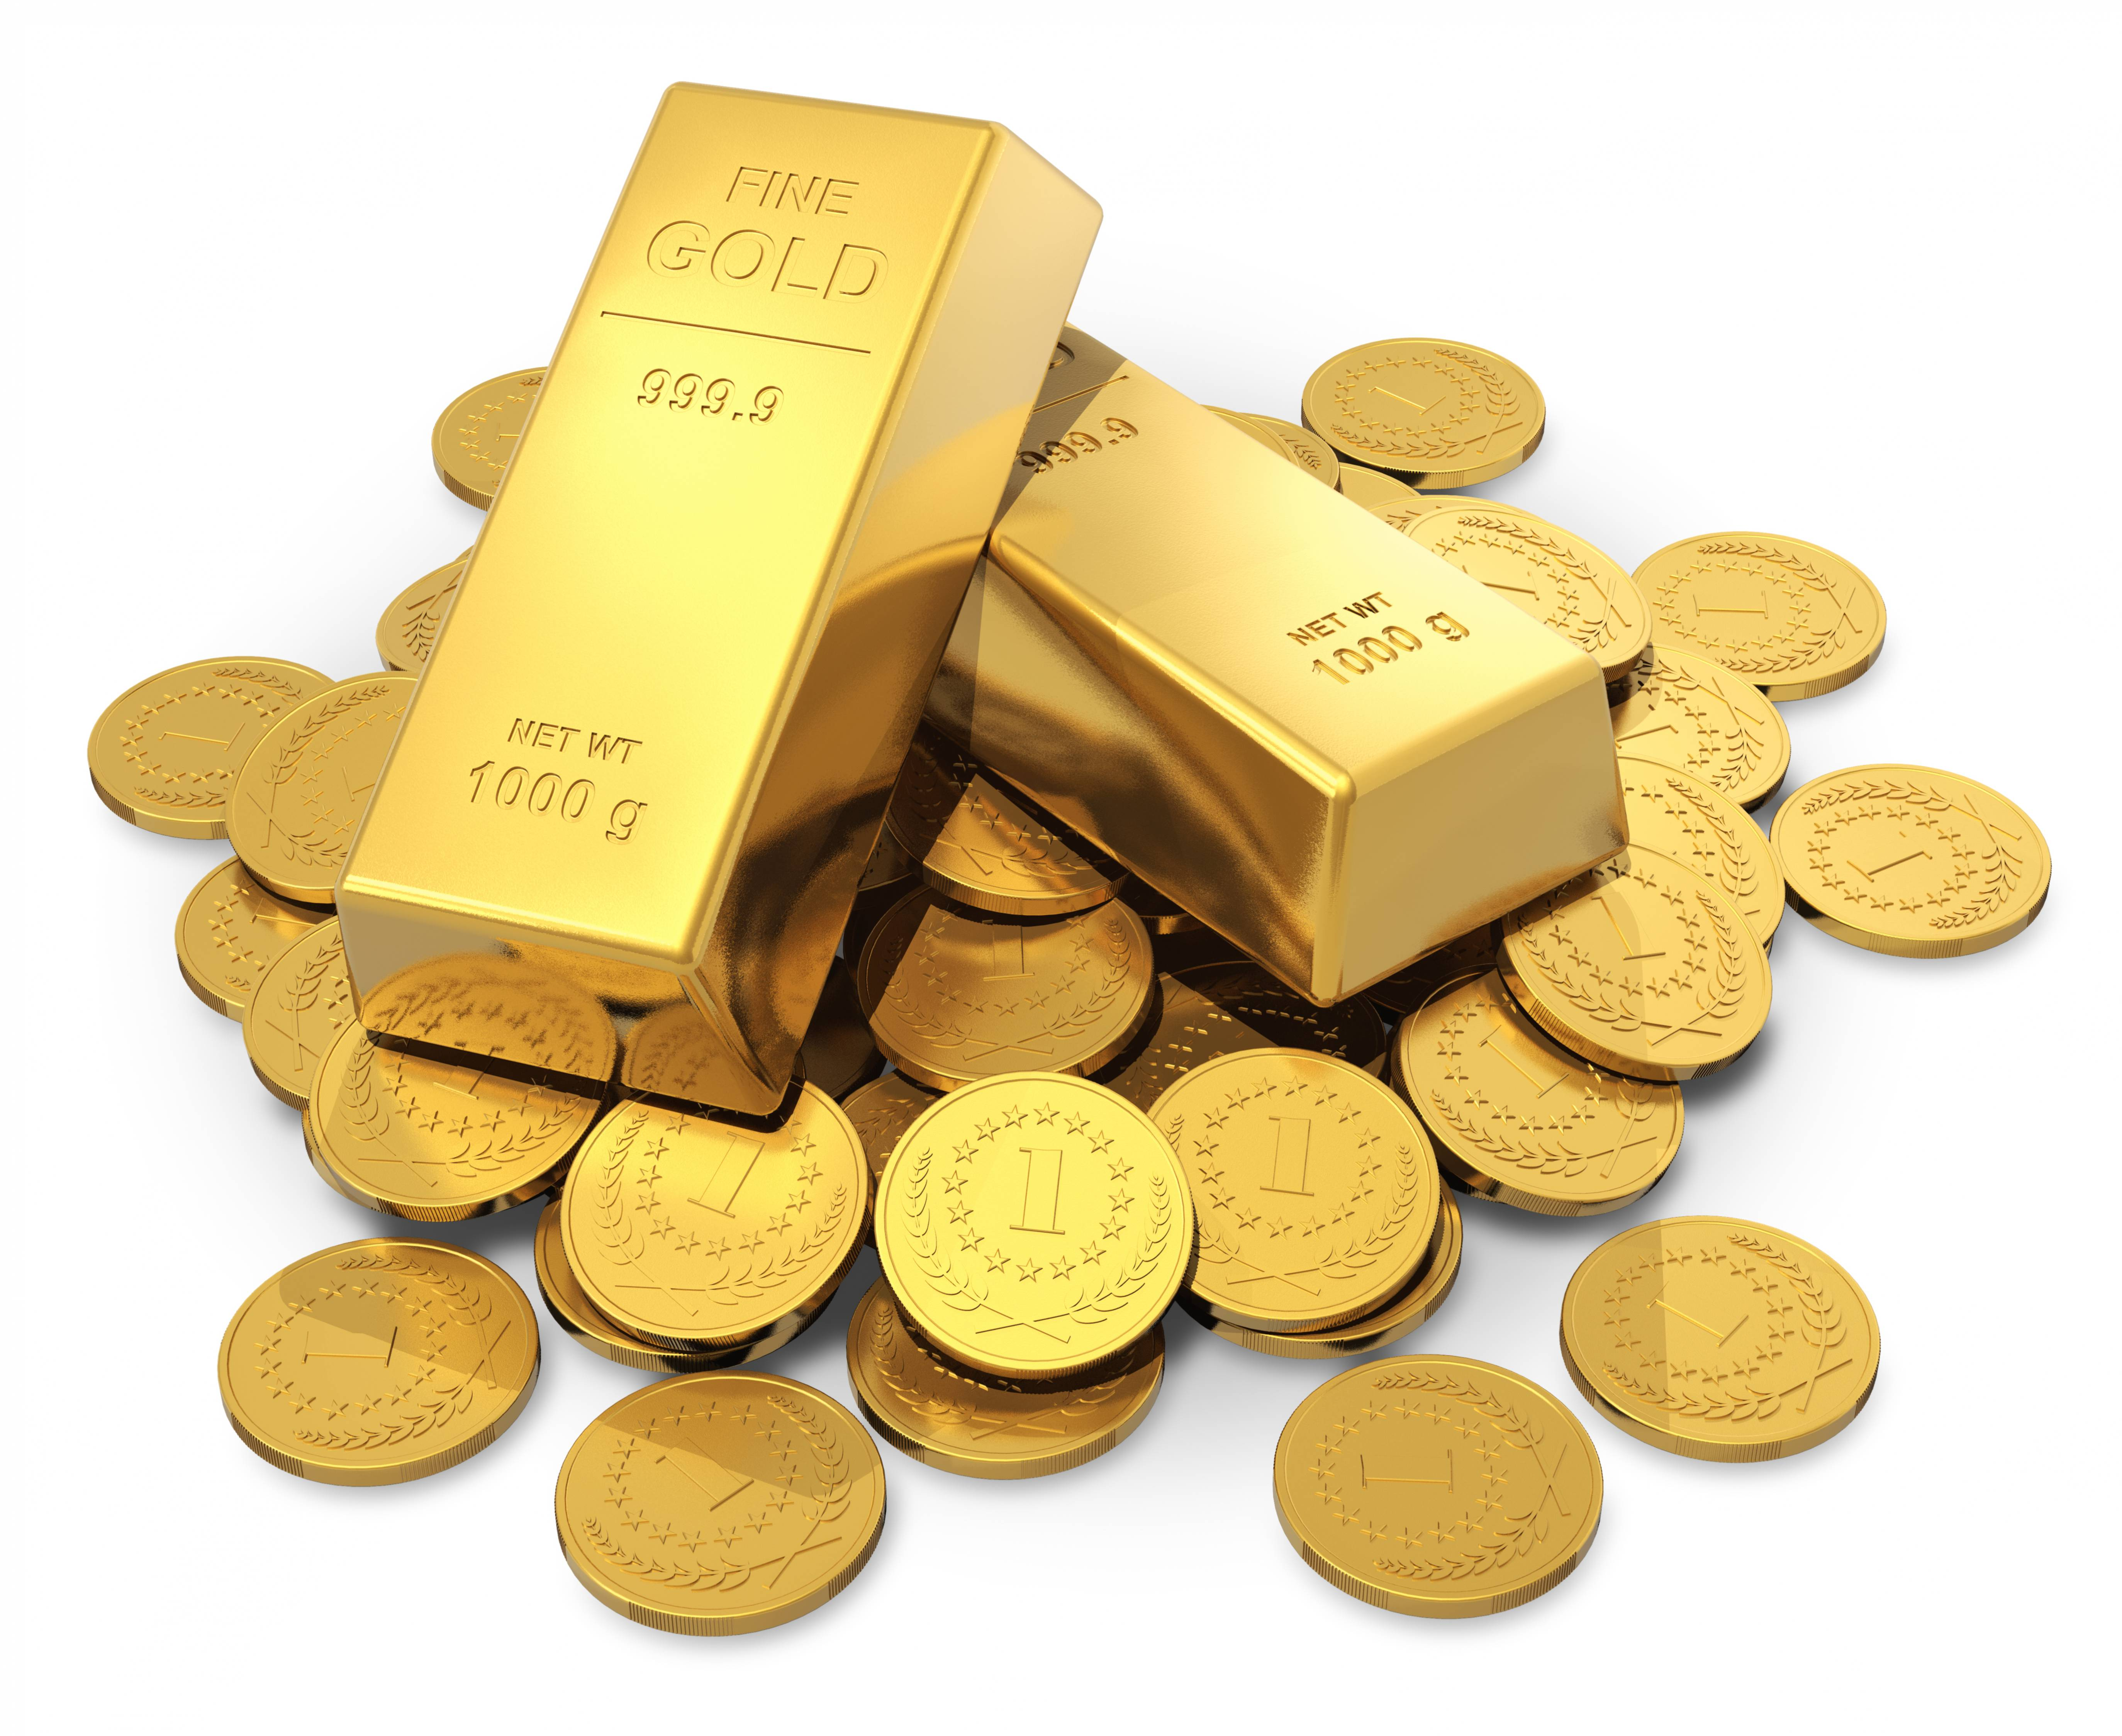 Pile of 24K gold ingots and coins